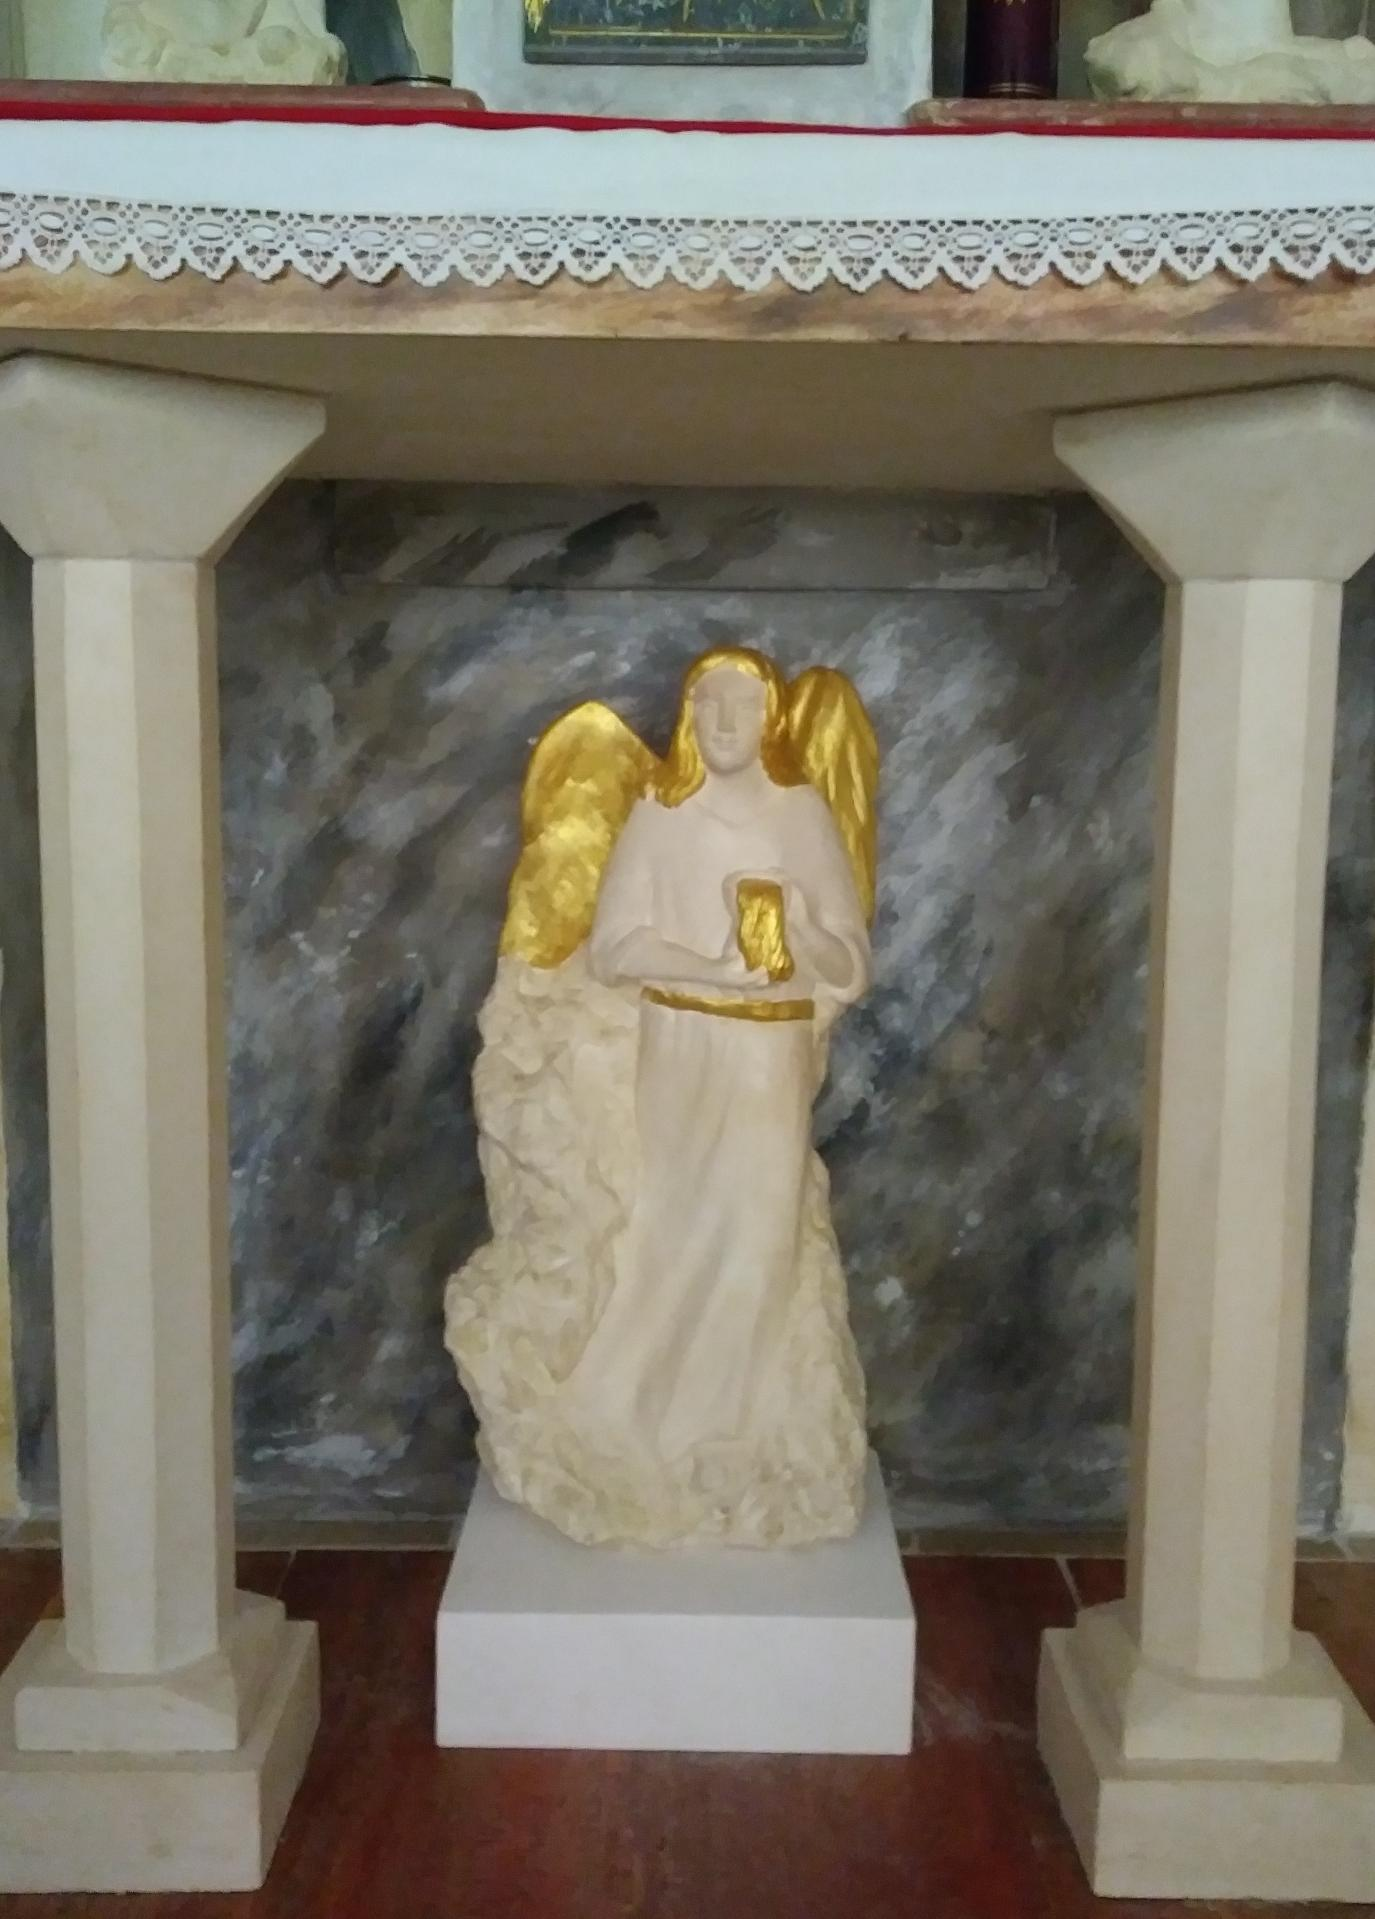 Ensemble fresque sculpture et mobilier liturgique de jean joseph chevalier 7